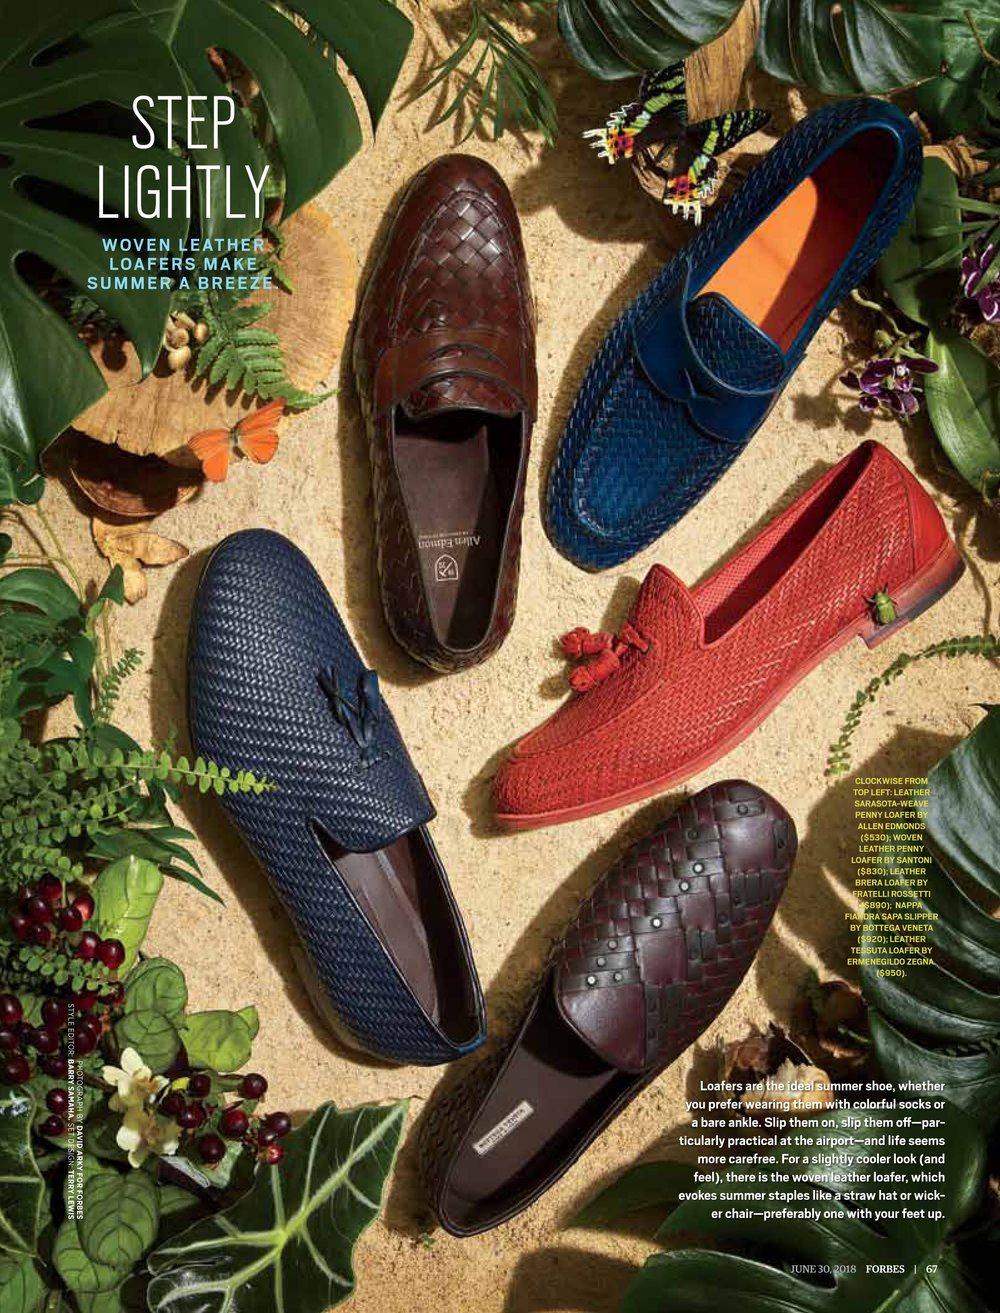 Step Lightly: The Best Woven Leather Loafers for Summer